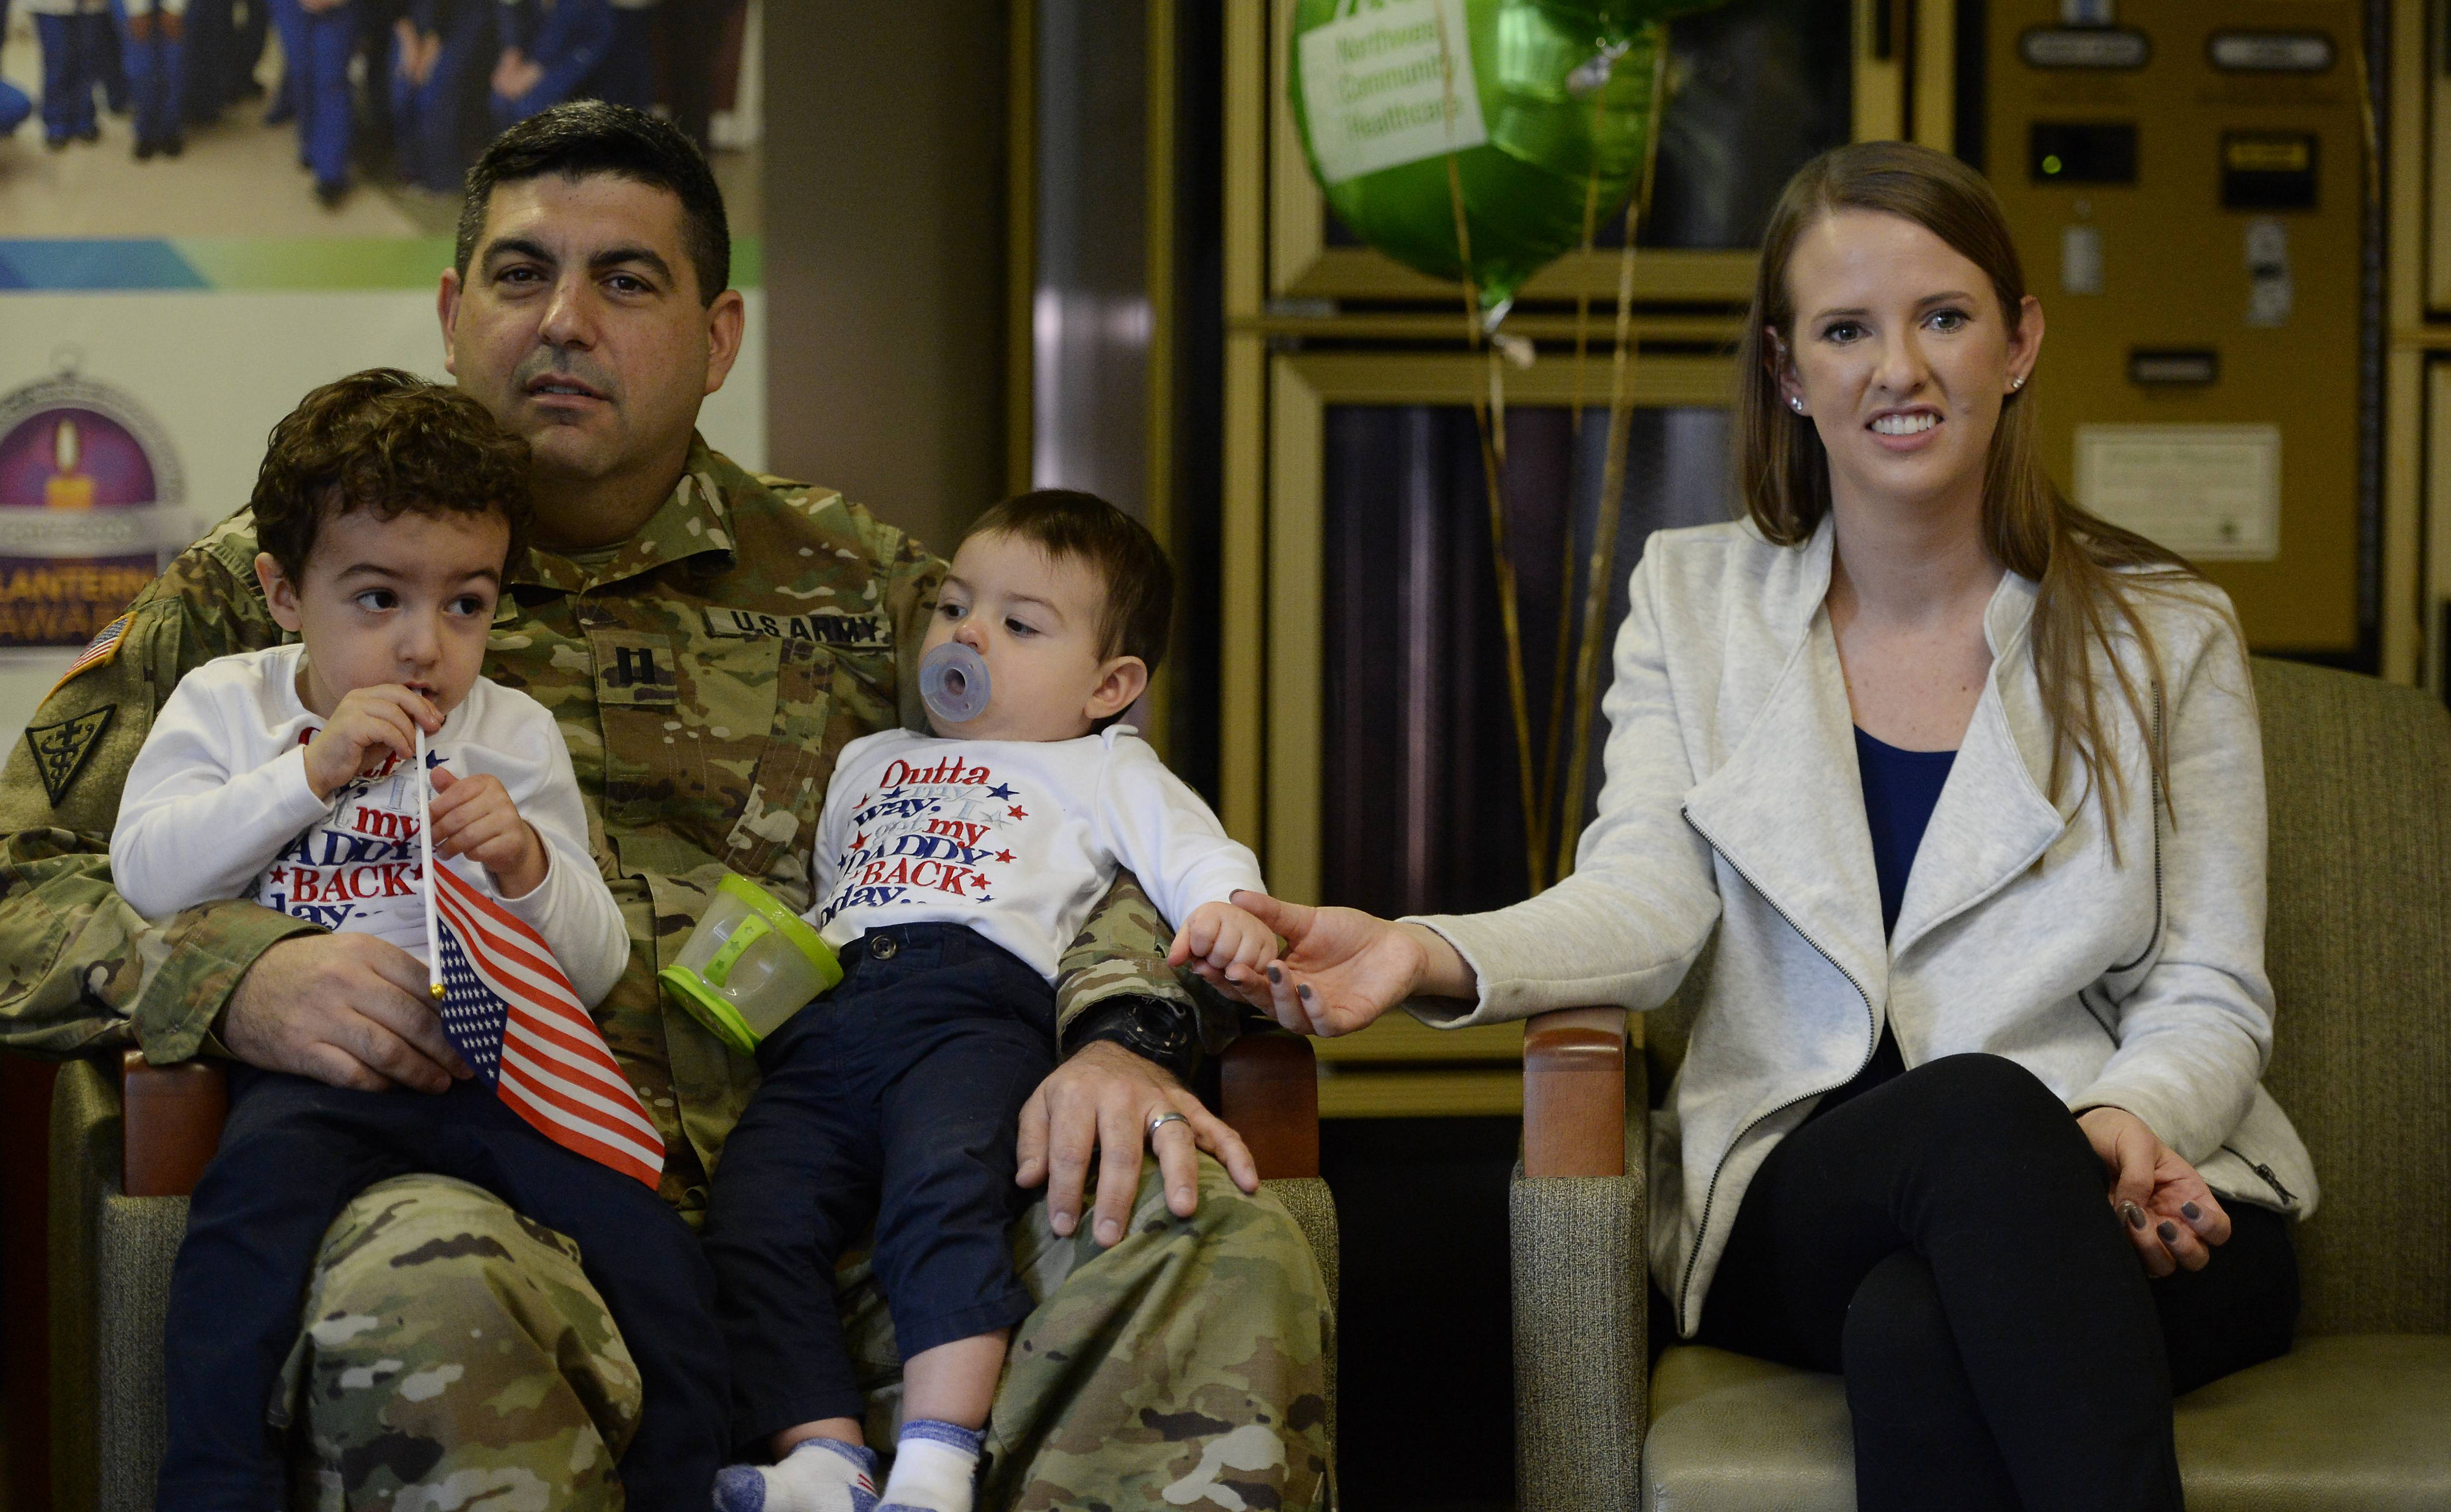 Dr. Jonathan Garlovsky, with his wife, Trisha, and sons Mason, 2, and Nate, 1, returned to Northwest Community Hospital in Arlington Heights on Monday. He spent three months with the U.S. Army Reserve in Kuwait.